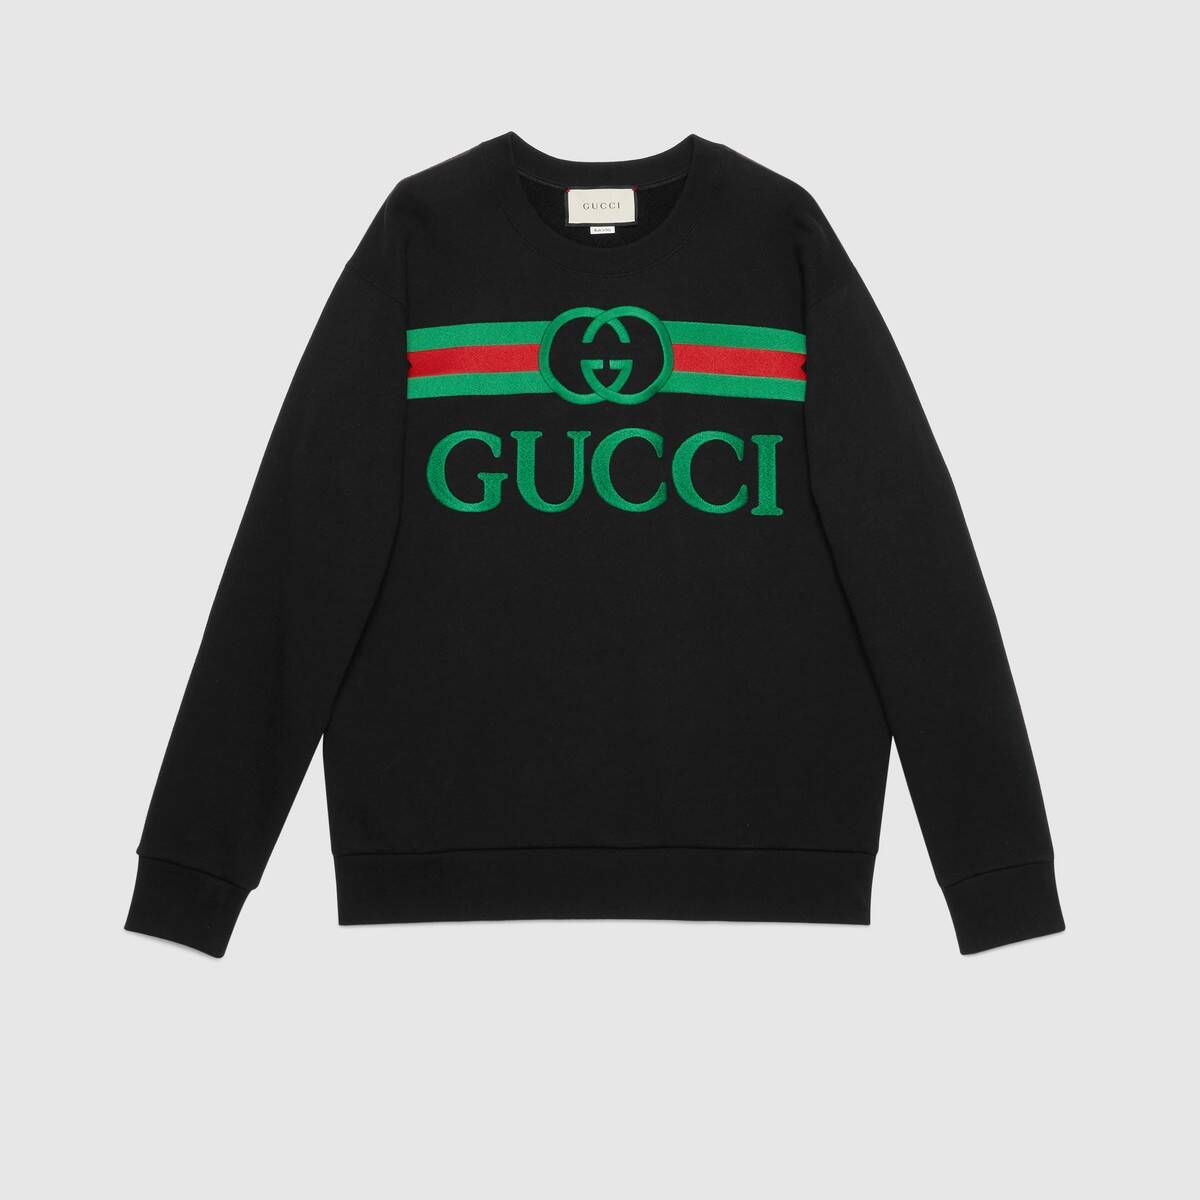 Shop The Black Cotton Oversize Sweatshirt With Gucci Logo At Gucci Com Enjoy Free Shipping And Complimentar Sweatshirts Oversized Sweatshirt Sweatshirts Women [ 1200 x 1200 Pixel ]